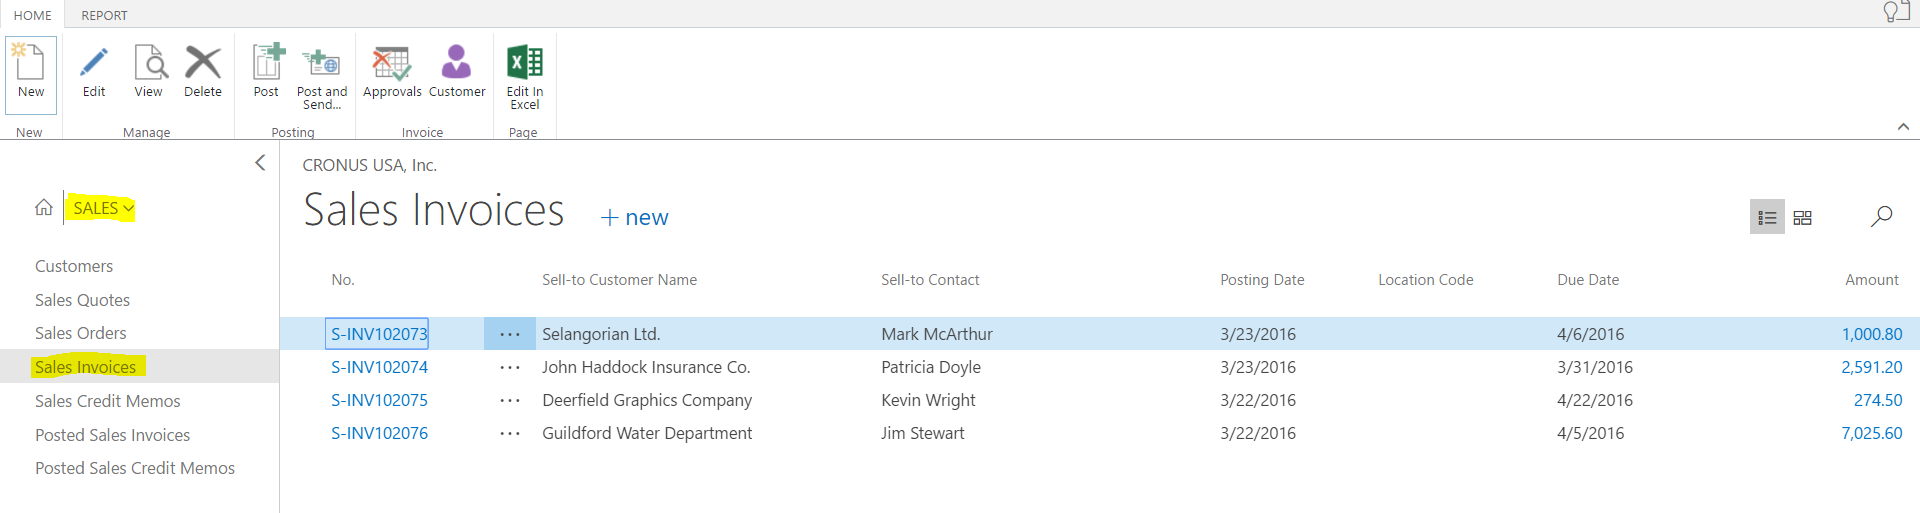 Microsoft Dynamics For Financials Create Sales Invoice Logan - Invoice 365